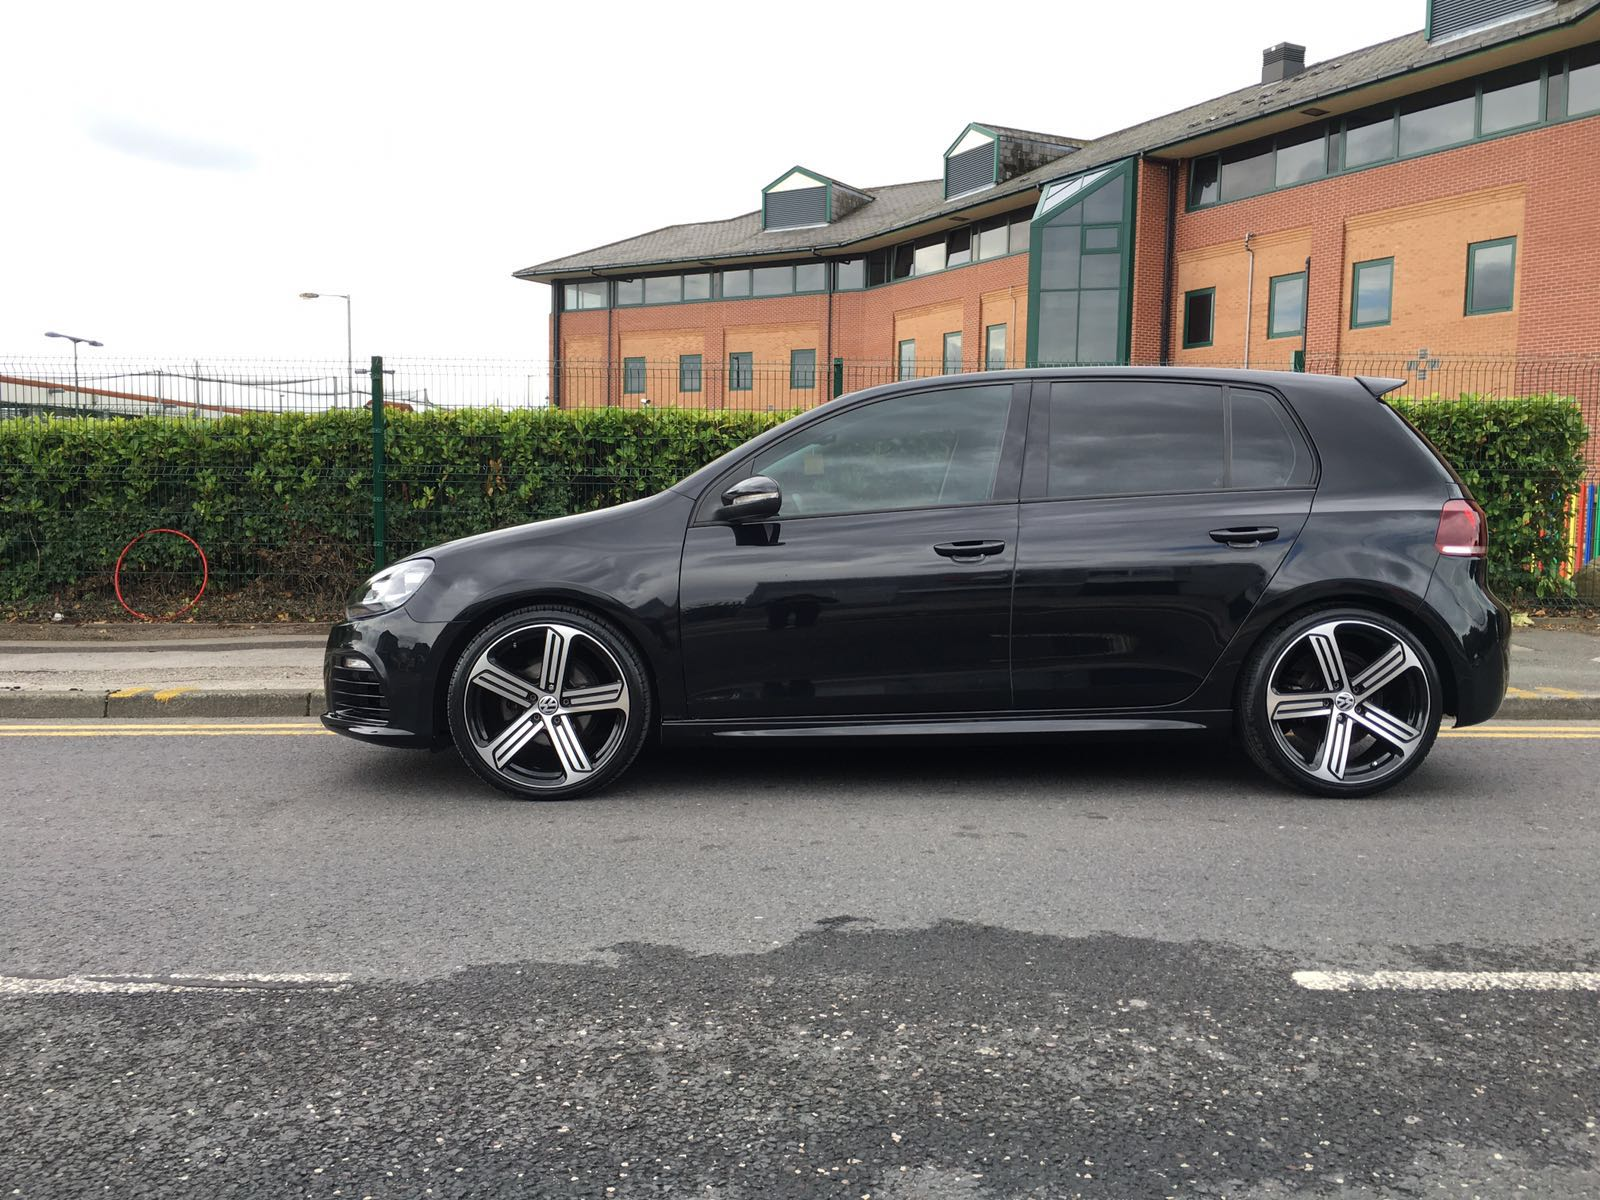 Vw Golf R20 conversion body styling